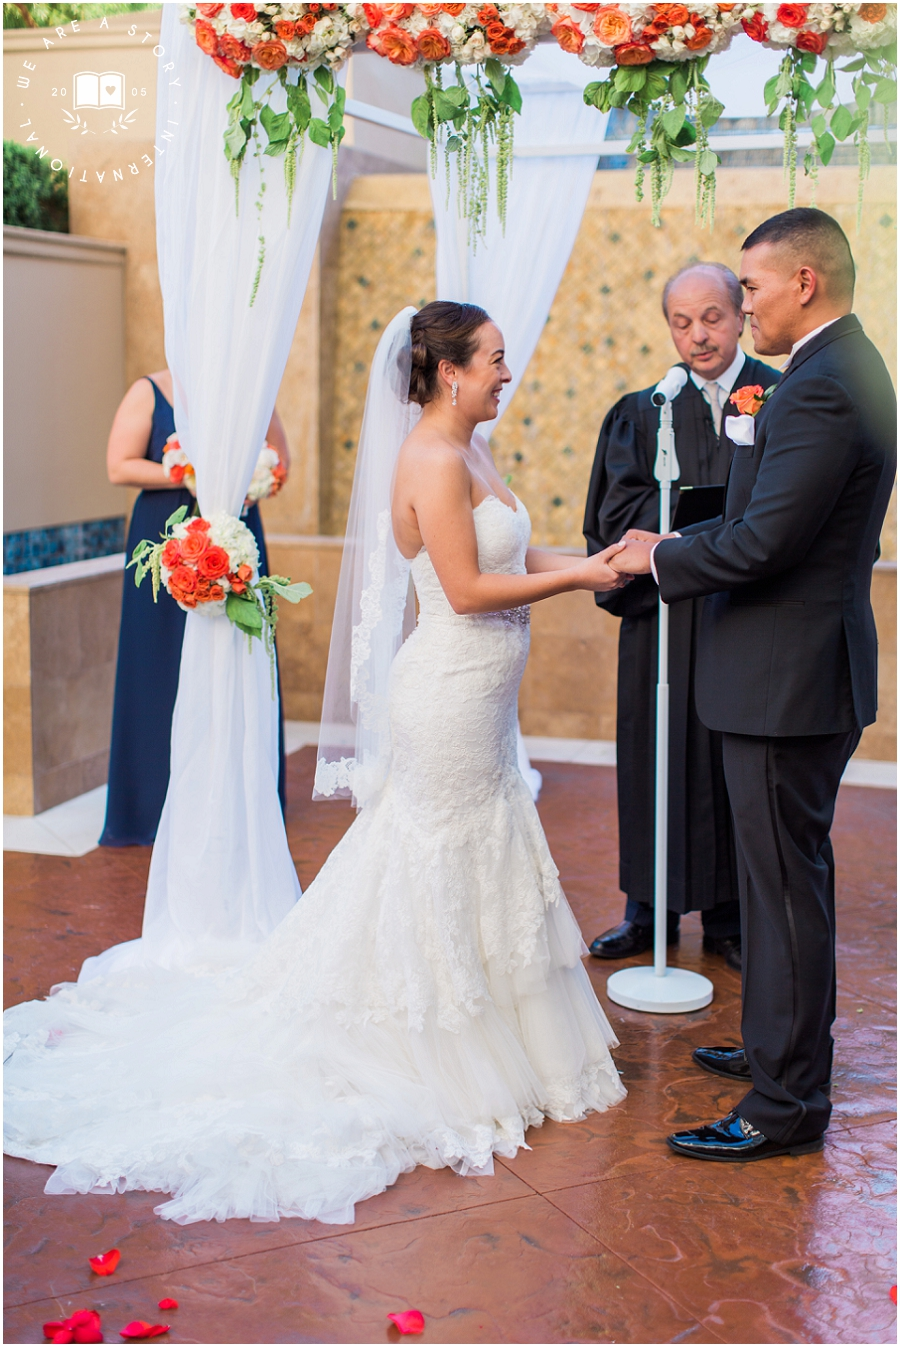 Four Seasons wedding photographer Las Vegas _ We Are A Story wedding photographer_2495.jpg